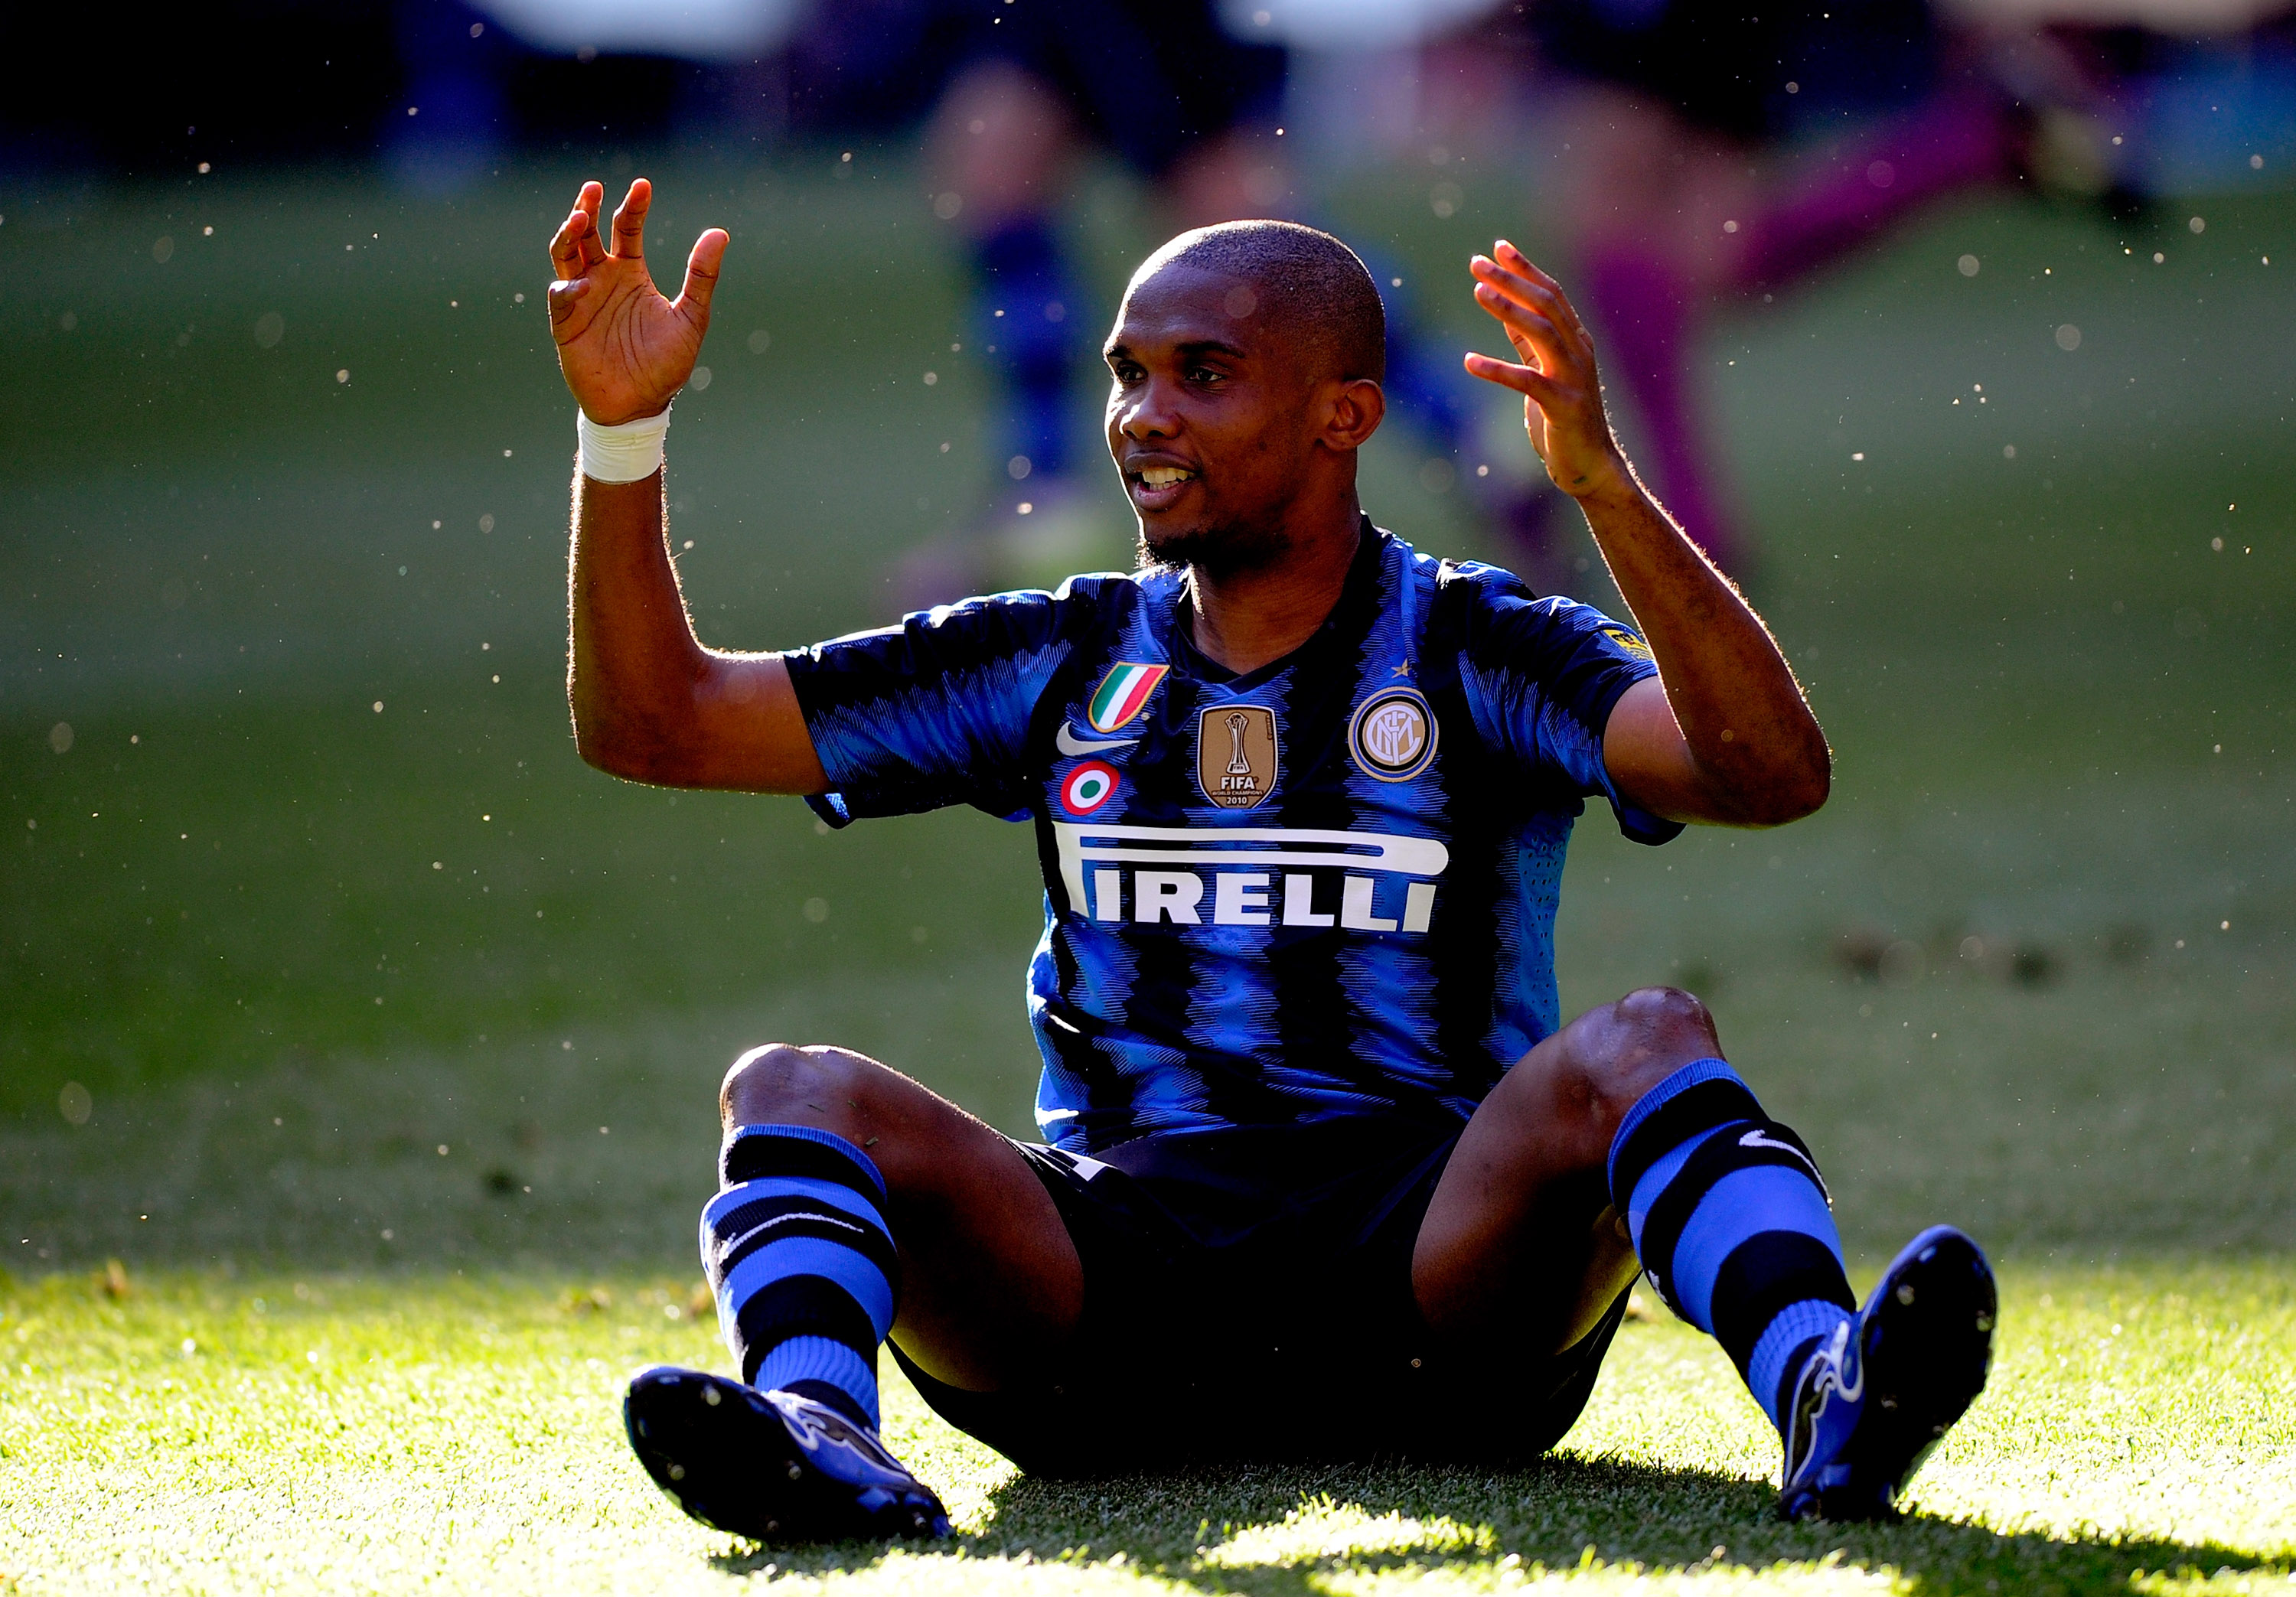 MILAN, ITALY - APRIL 09:  Samuel Eto'o of Inter Milan gestures during the Serie A match between FC Internazionale Milano and AC Chievo Verona at Stadio Giuseppe Meazza on April 9, 2011 in Milan, Italy.  (Photo by Claudio Villa/Getty Images)